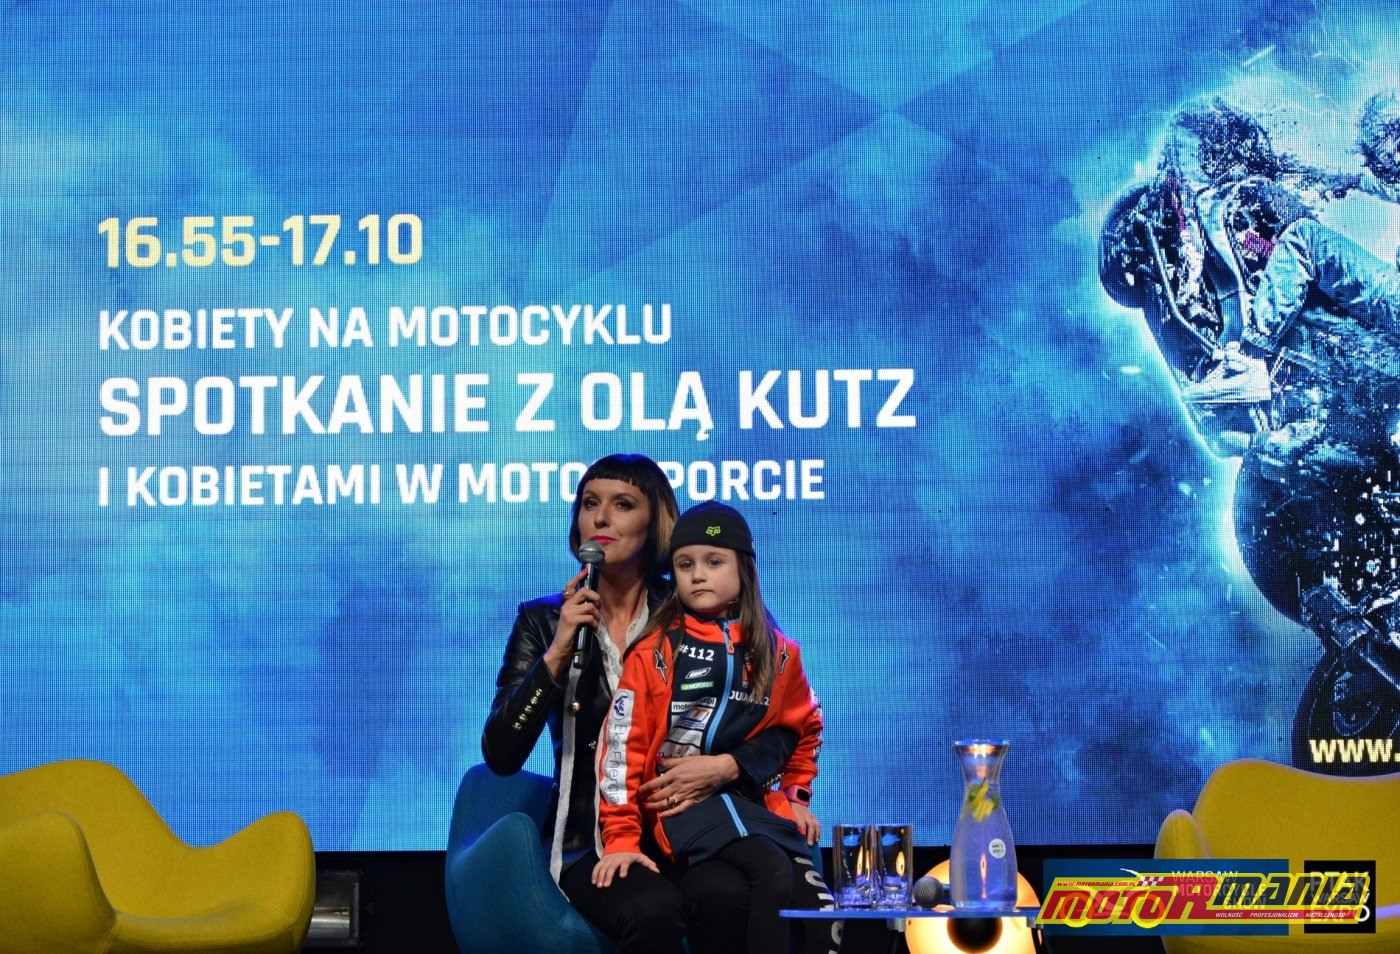 Warsaw Motorcycle Show 2019 (11)